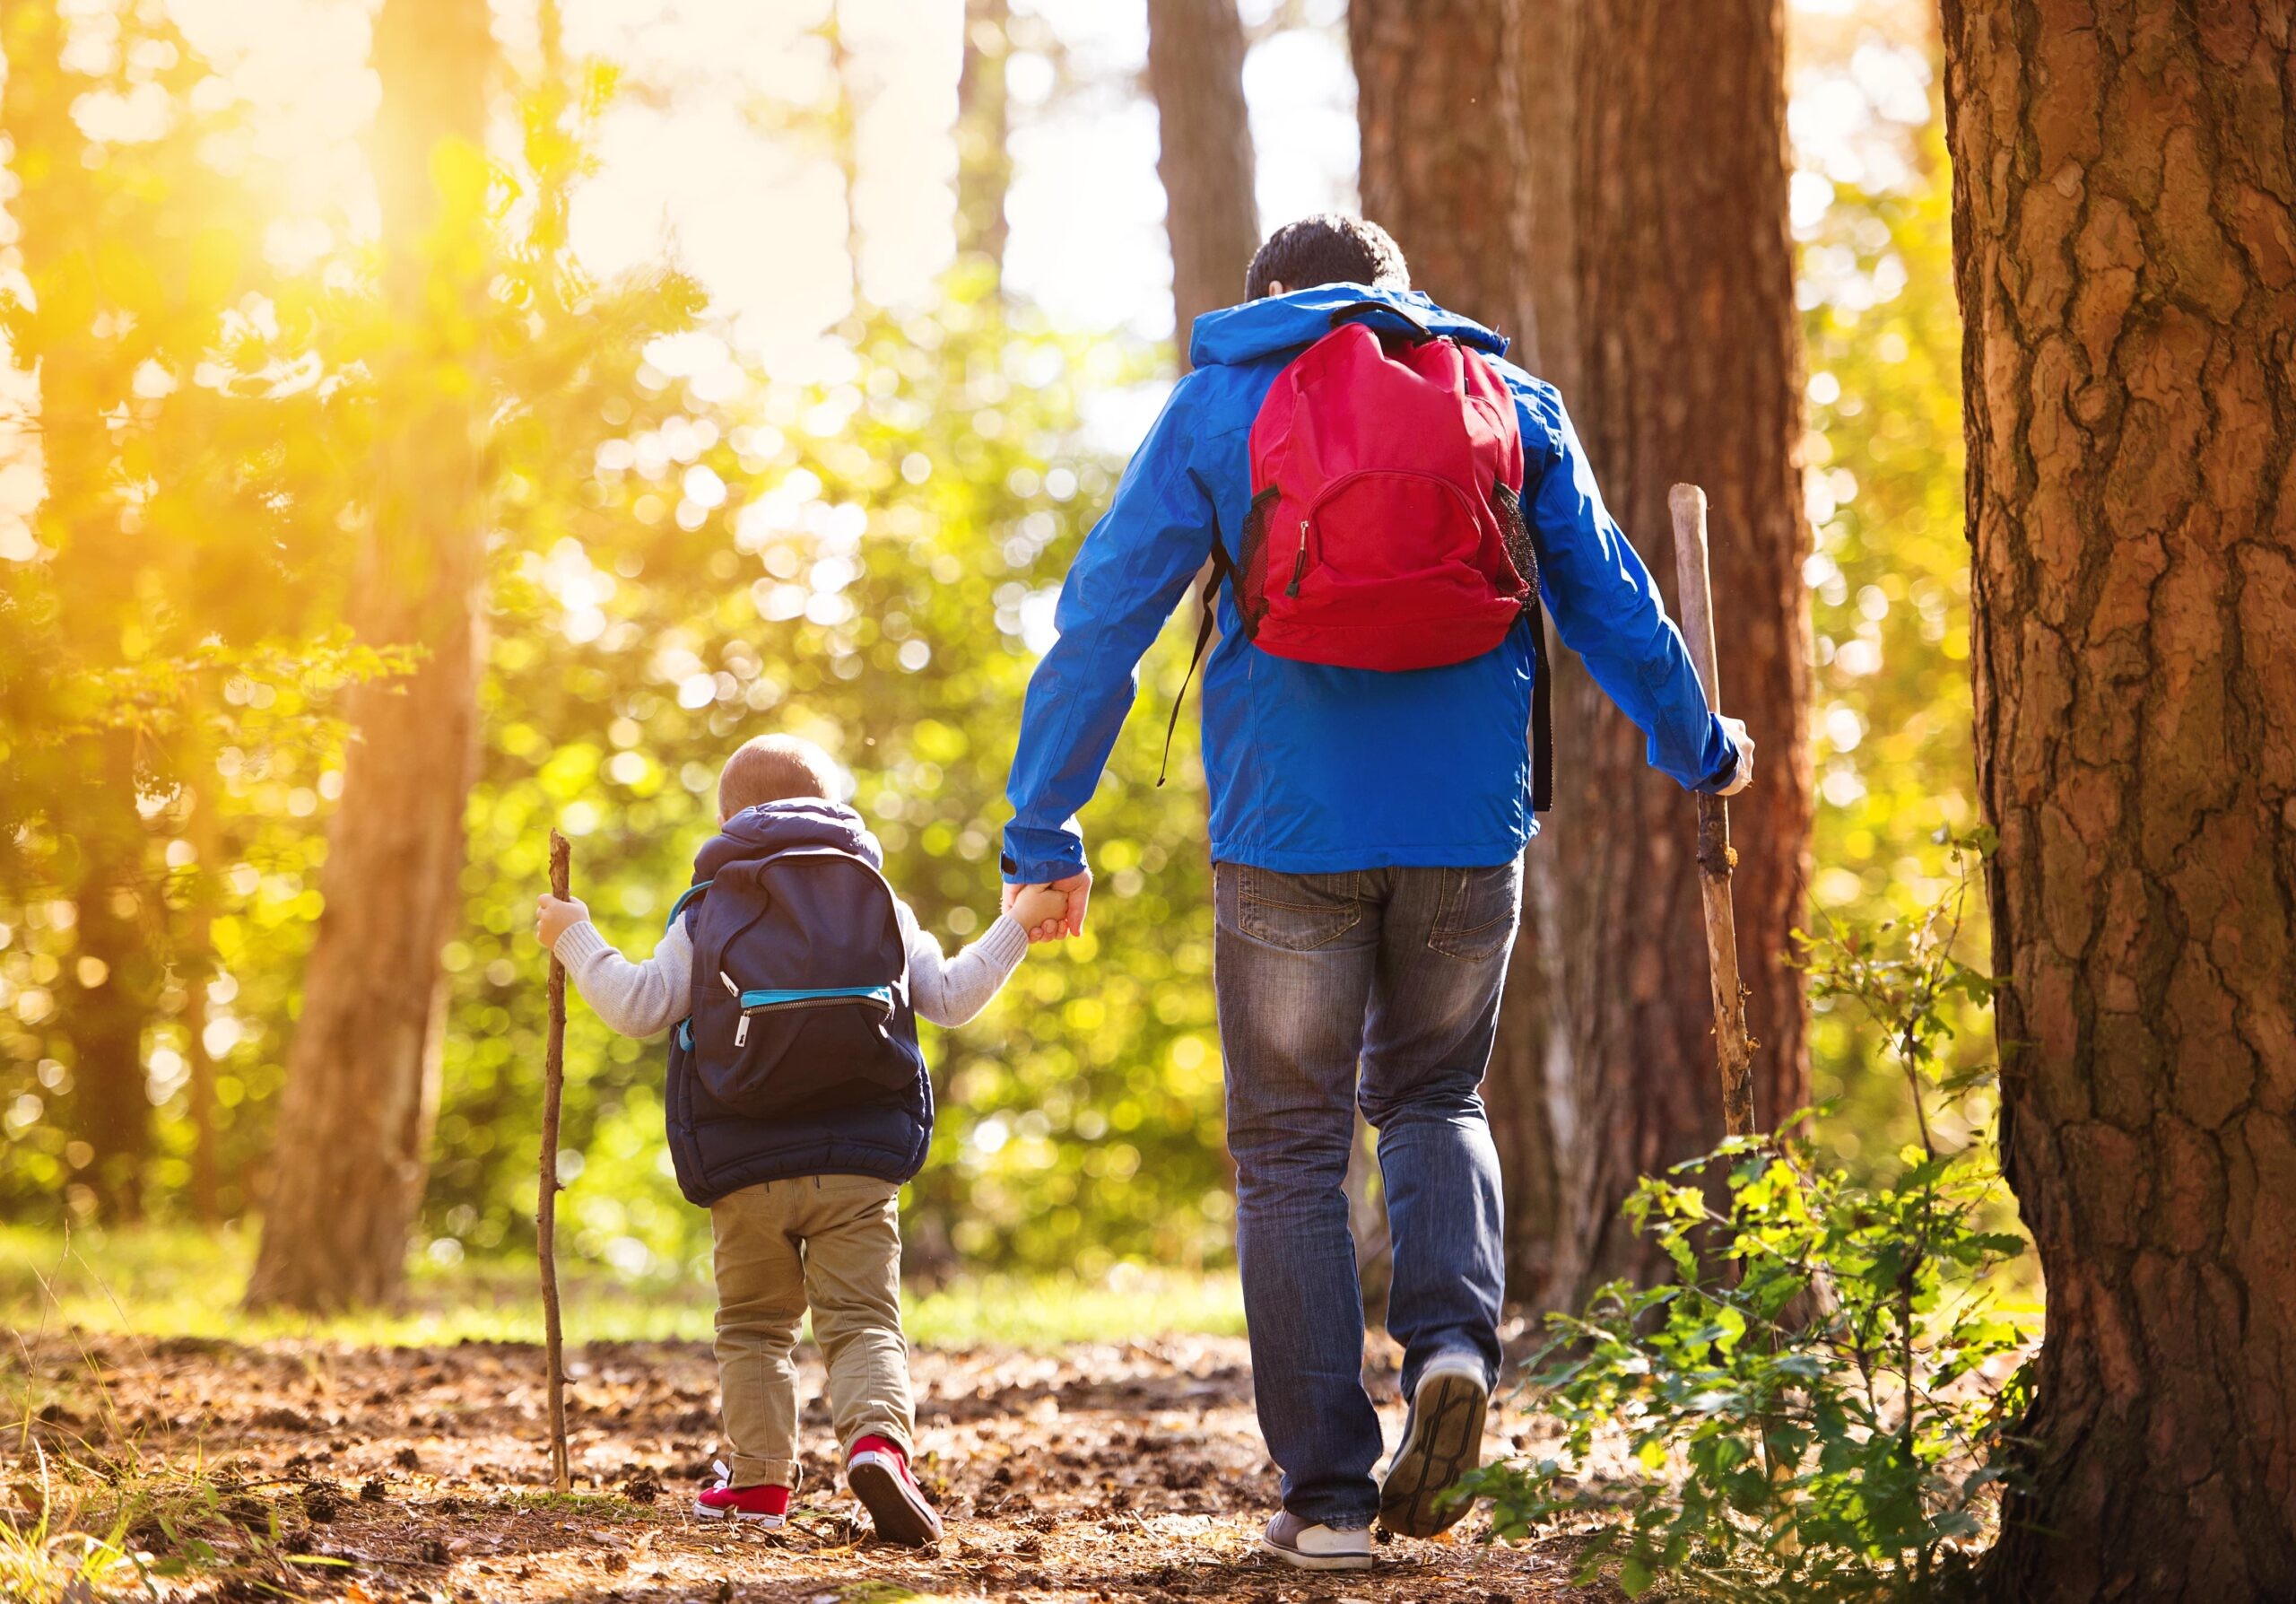 Young child and father hiking in the forest.